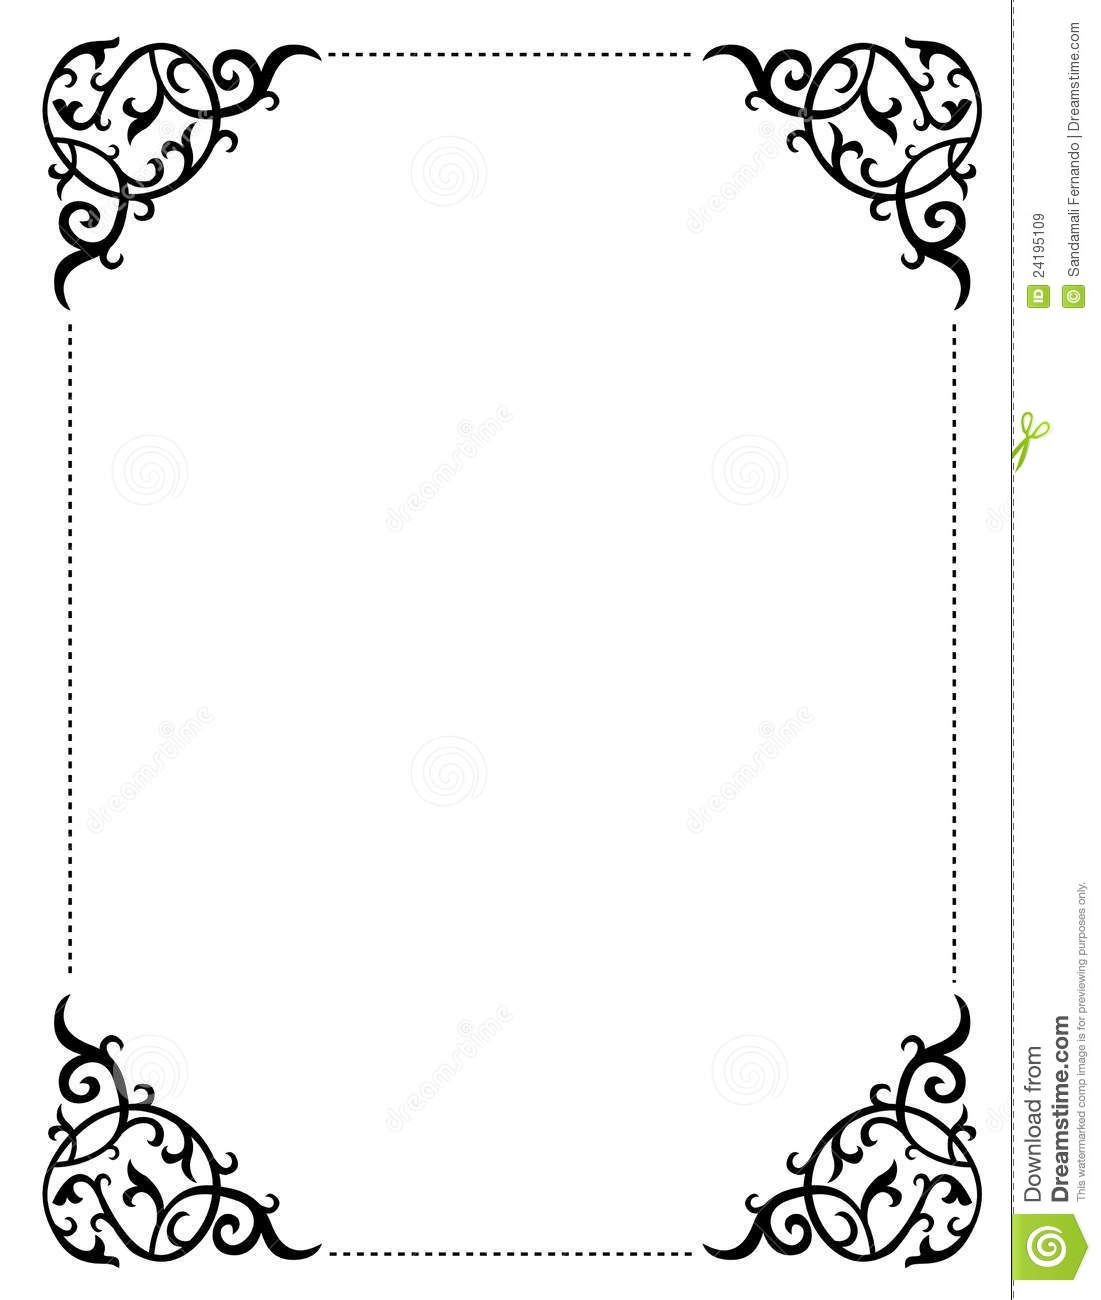 Free Printable Wedding Clip Art Borders And Backgrounds Invitation - Free Printable Wedding Clipart Borders